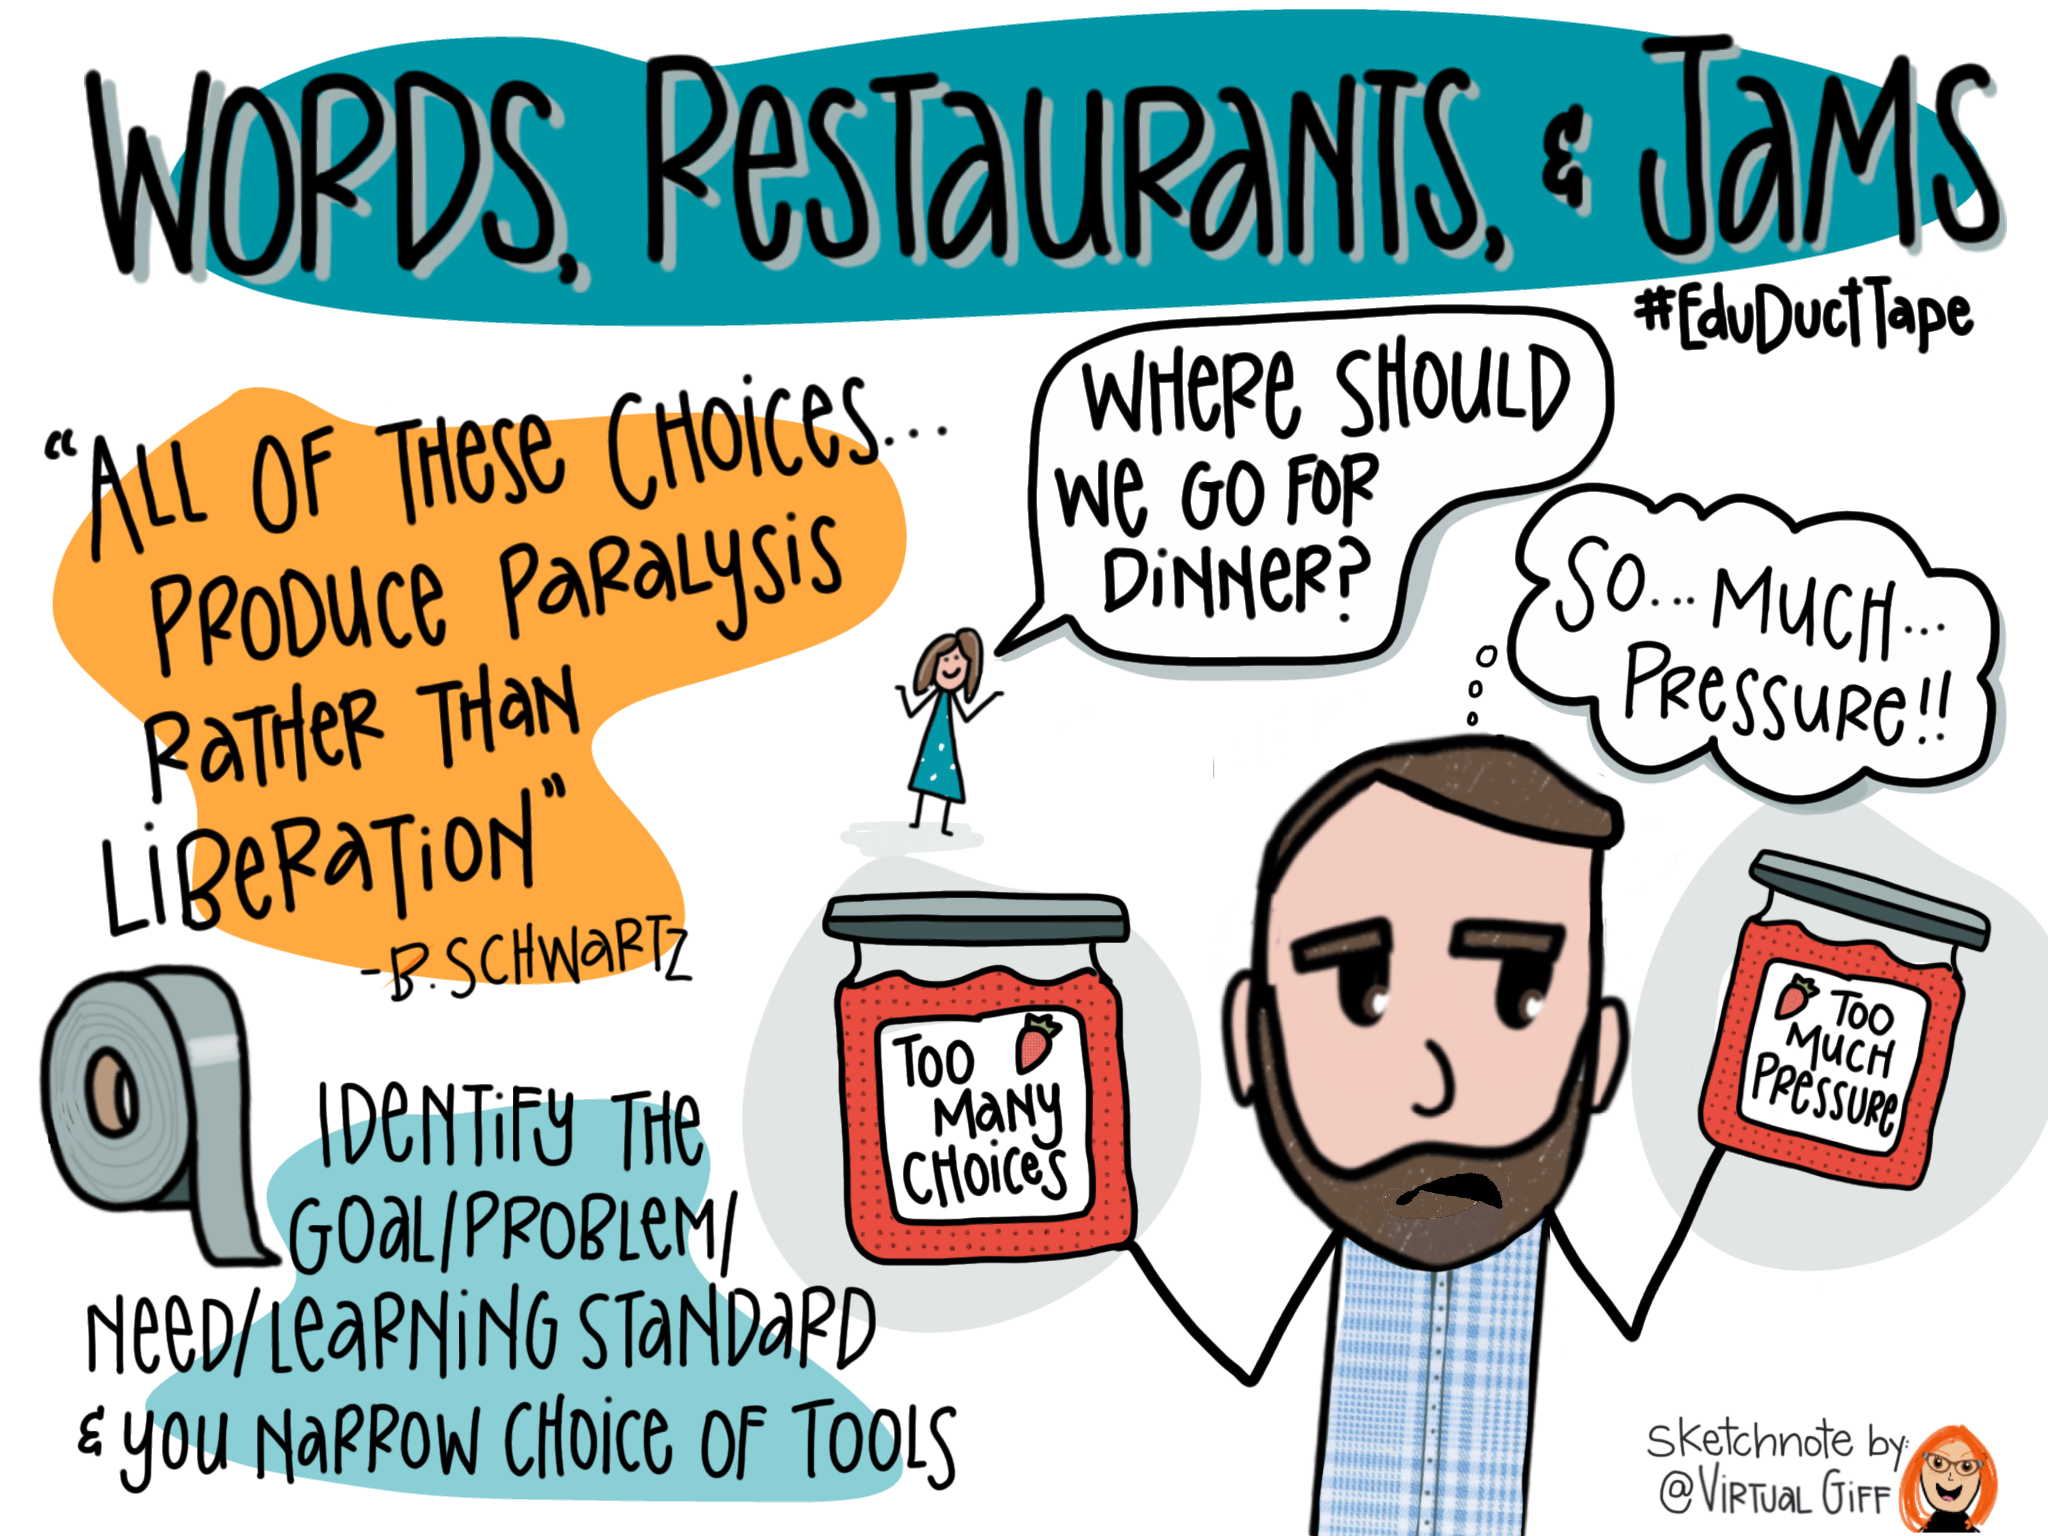 """This sketchnote includes the title of Chapter 4 of Educational Duct Tape: Words, Restaurants, and Jams. The Barry Schwartz quote """"All of these choices . . . produce paralysis rather than liberation"""" is featured alongside Jake's guidance for resolving this: """"Identify the goal/problem/need/learning standard and you narrow the choice of tools."""" Also, a drawing of Jake's wife asking """"Where should we go for dinner?"""" is featured alongside Jake looking at two jars of jam, one labeled """"Too many choices"""" and the other labeled """"Too much pressure"""" and the thought bubble """"So . . . much . . . pressure!!"""""""